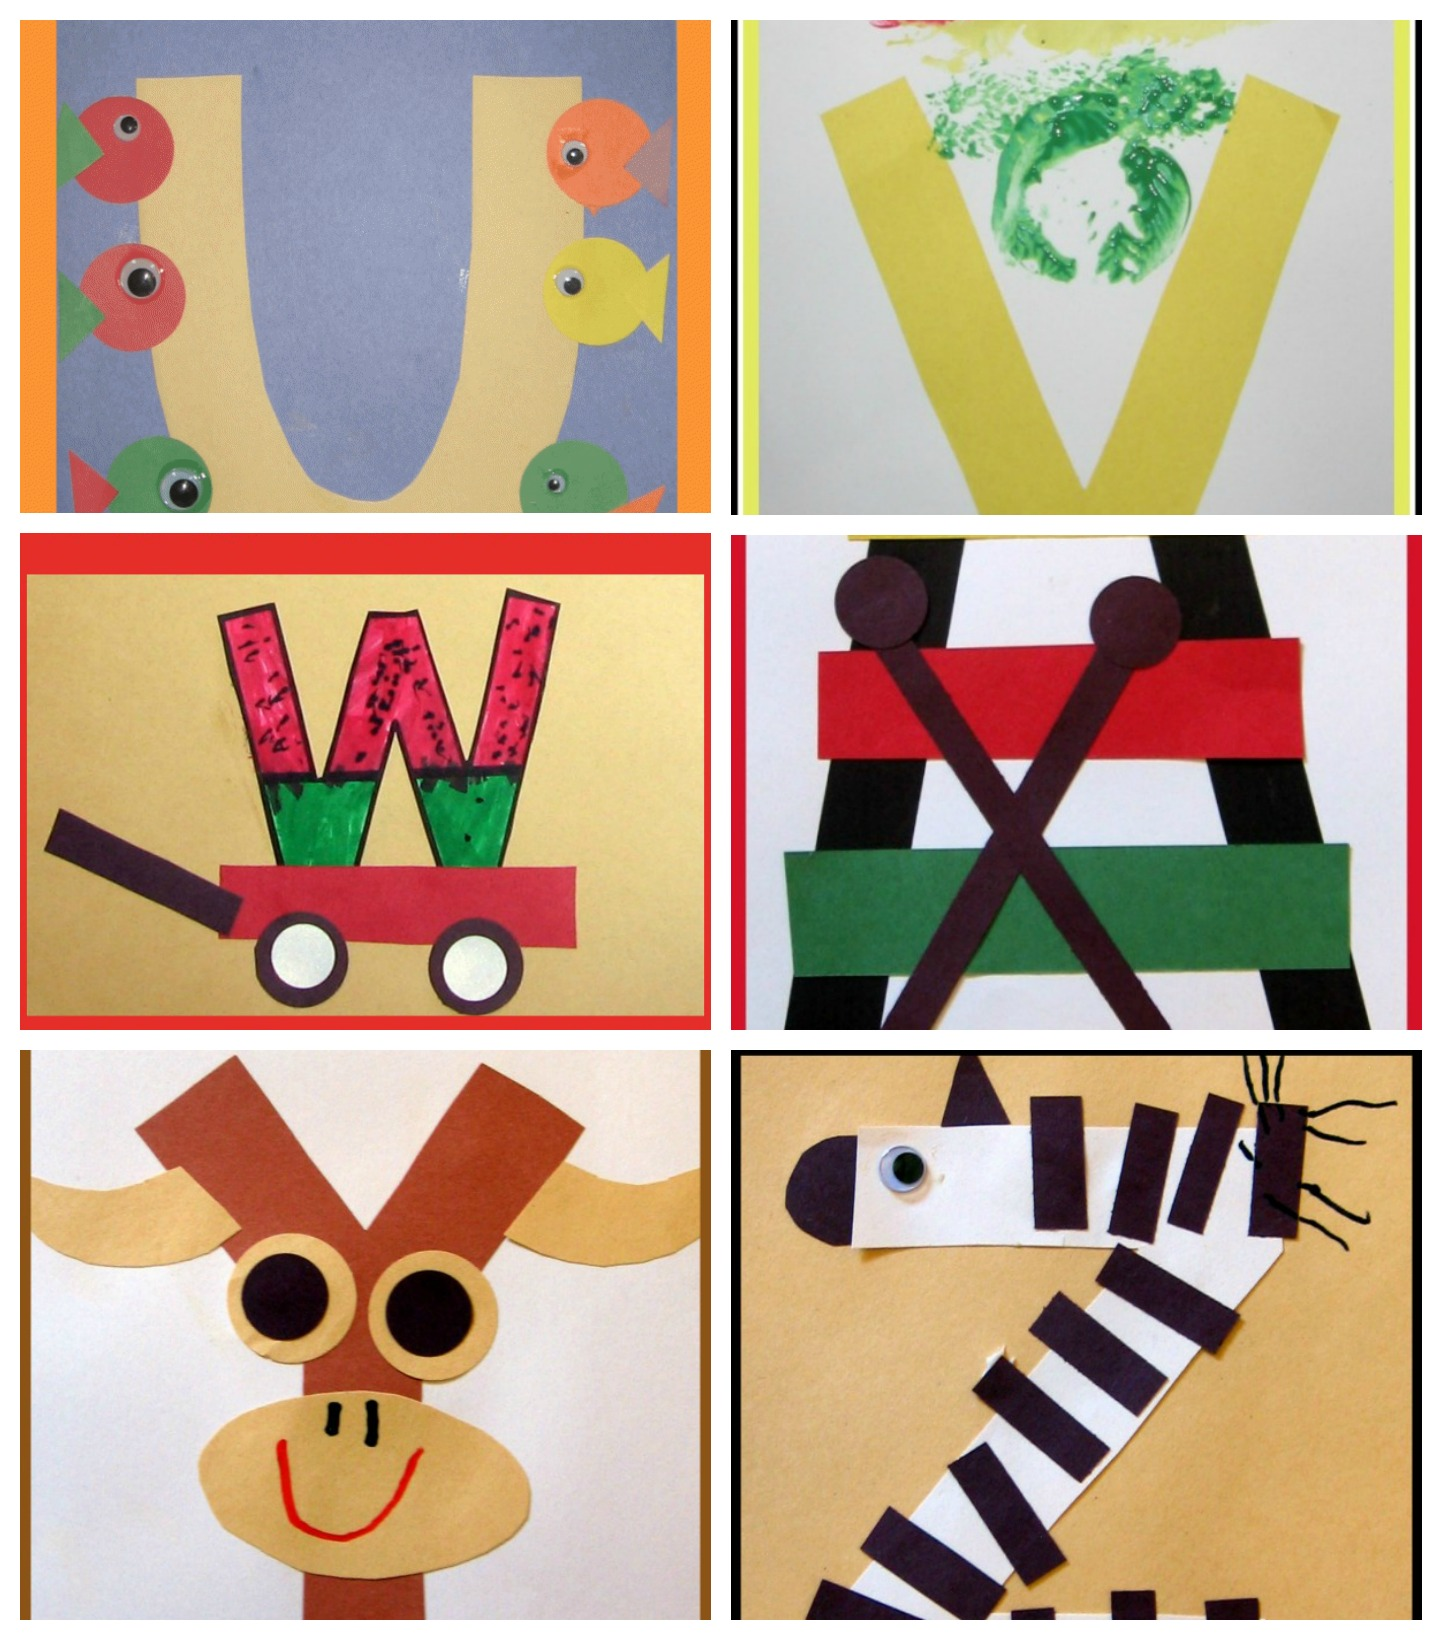 Letter s arts and crafts for preschoolers - Letter Of The Week Crafts For Preschoolers